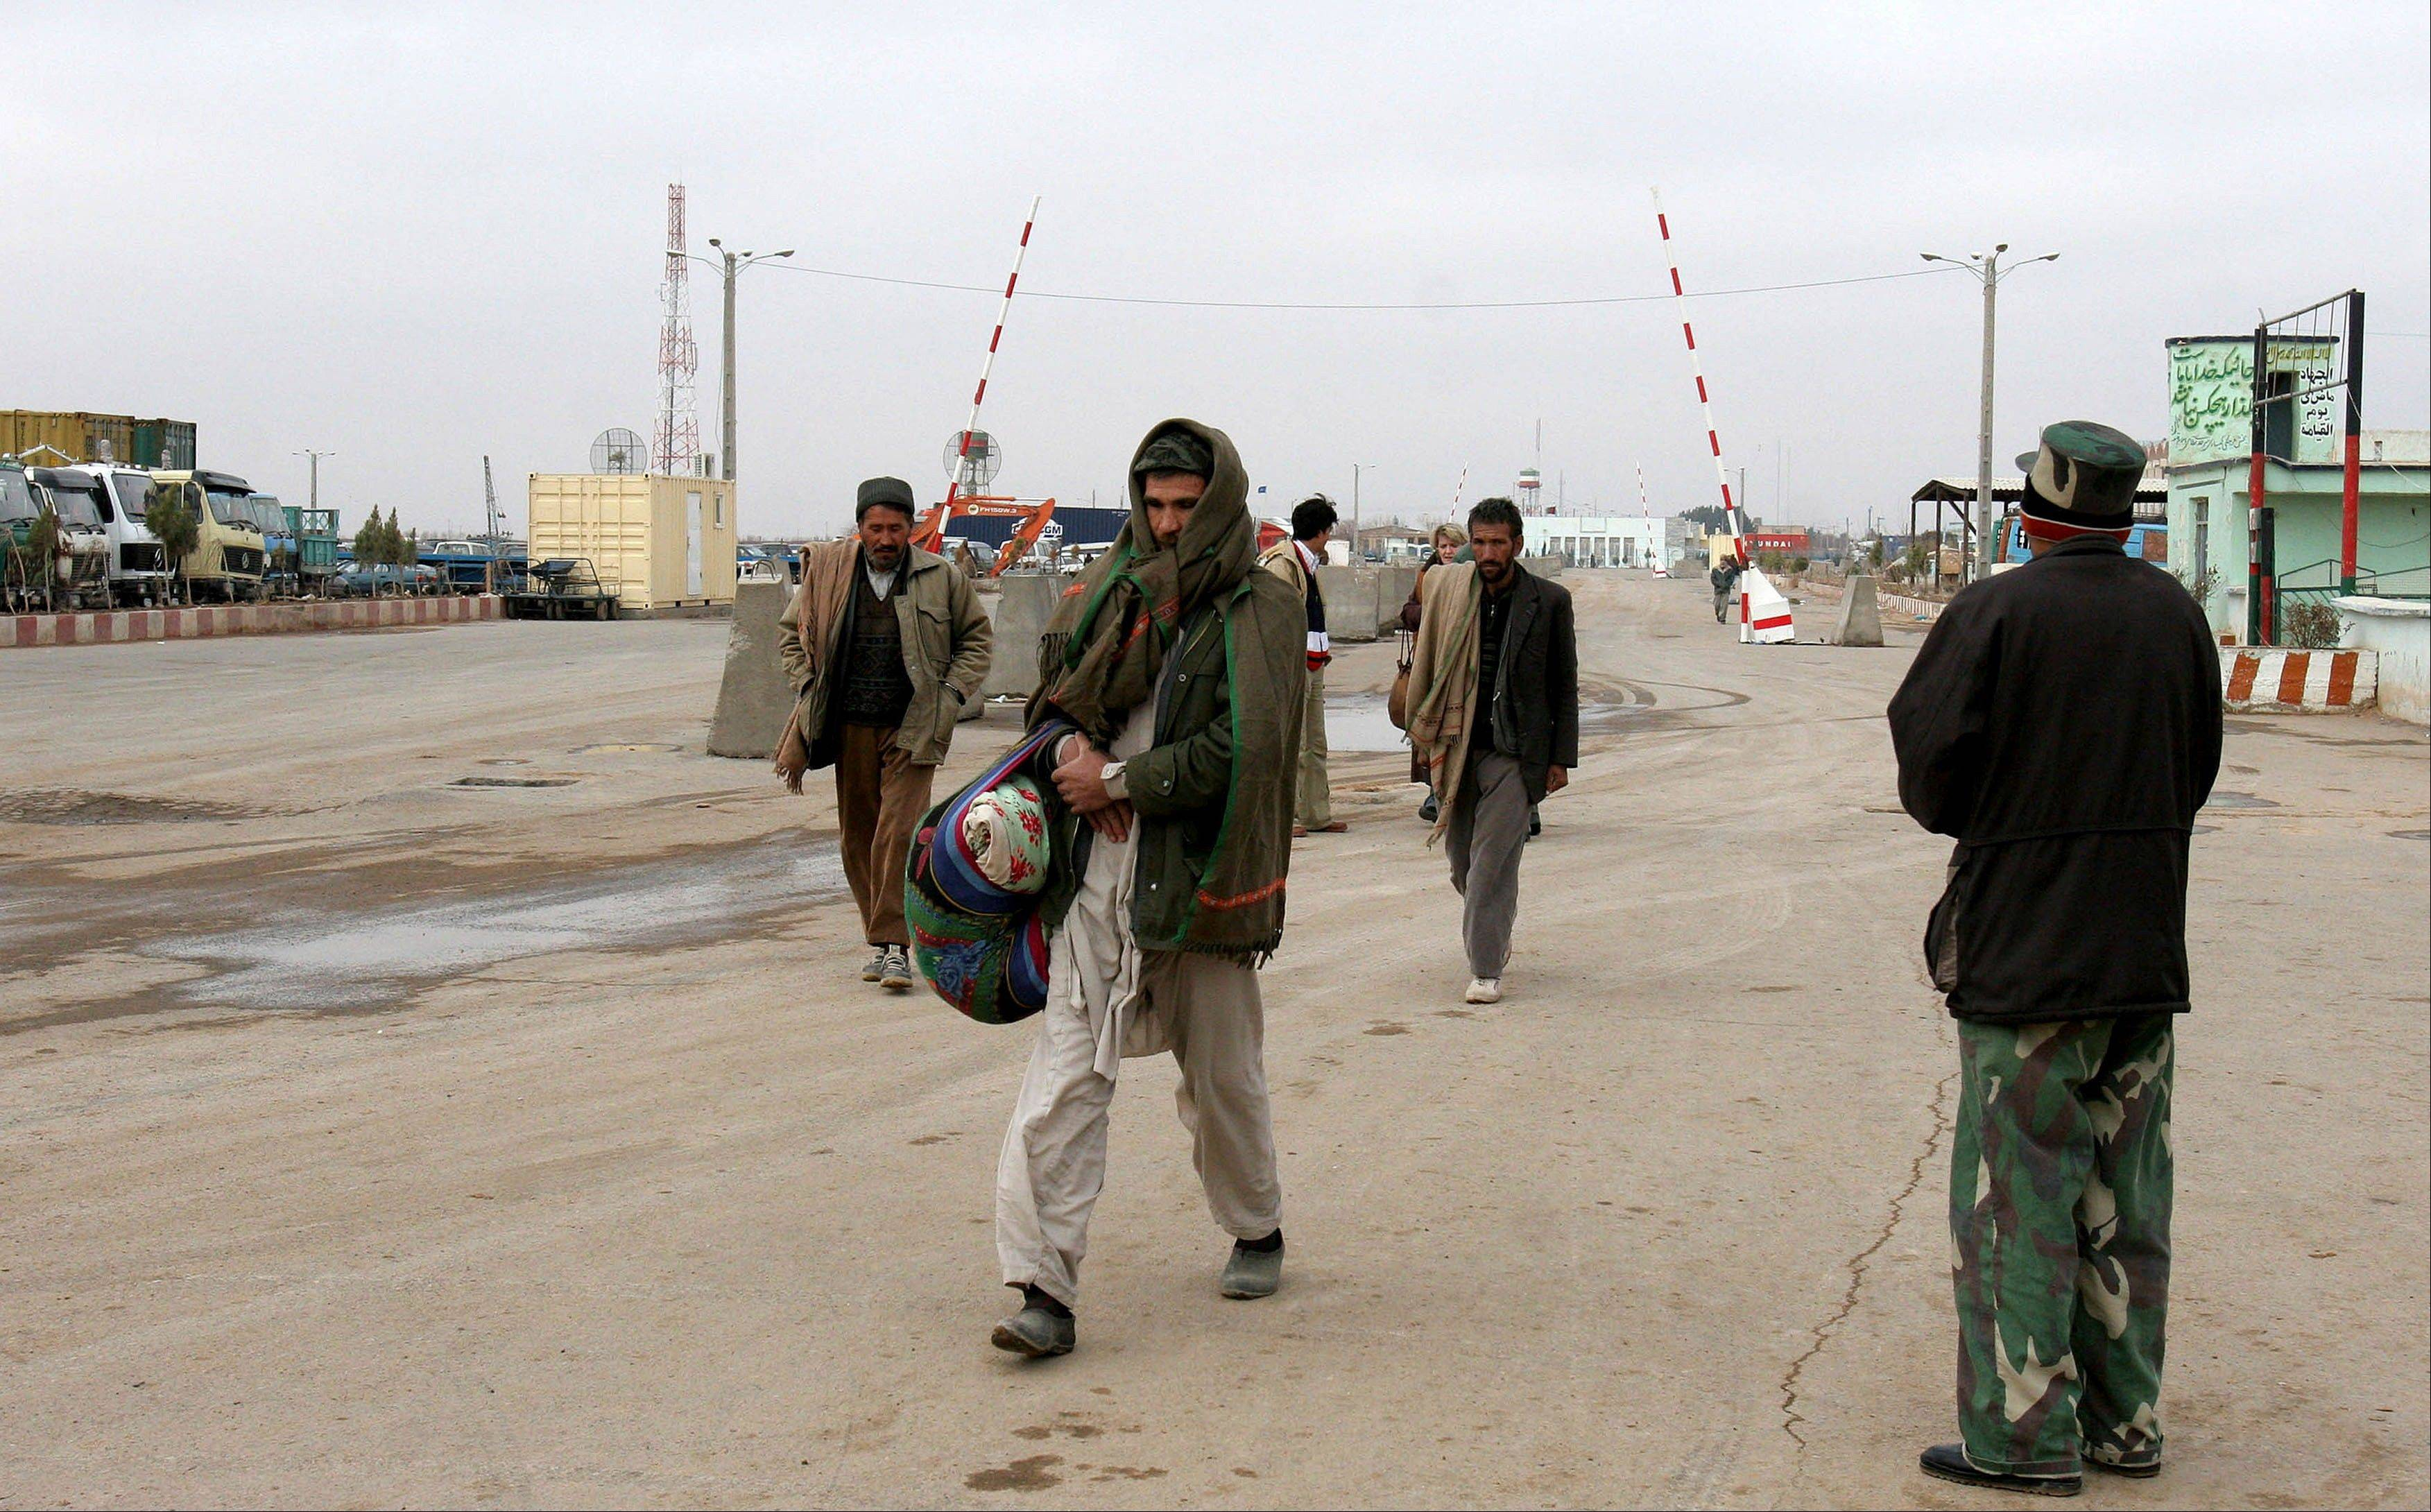 Men return to Afghanistan from Iran at Islam Kala, the largest border crossing in western Afghanistan, near Herat.